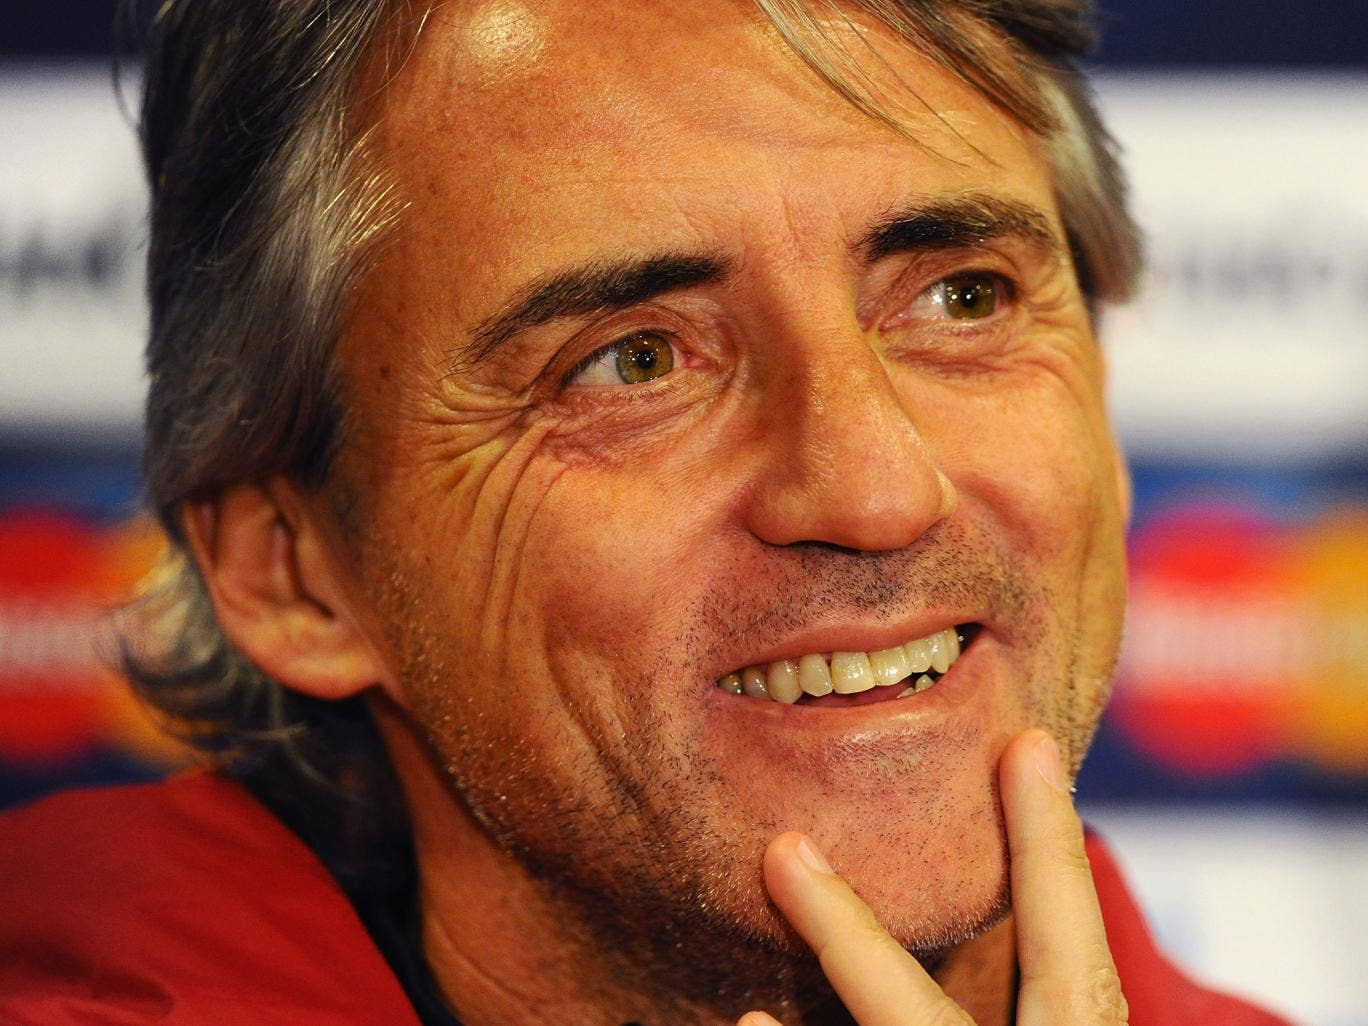 Roberto Mancini claimed it was 'a miracle' that Galatasaray reached the knockout stages and said it would be difficult to win tonight